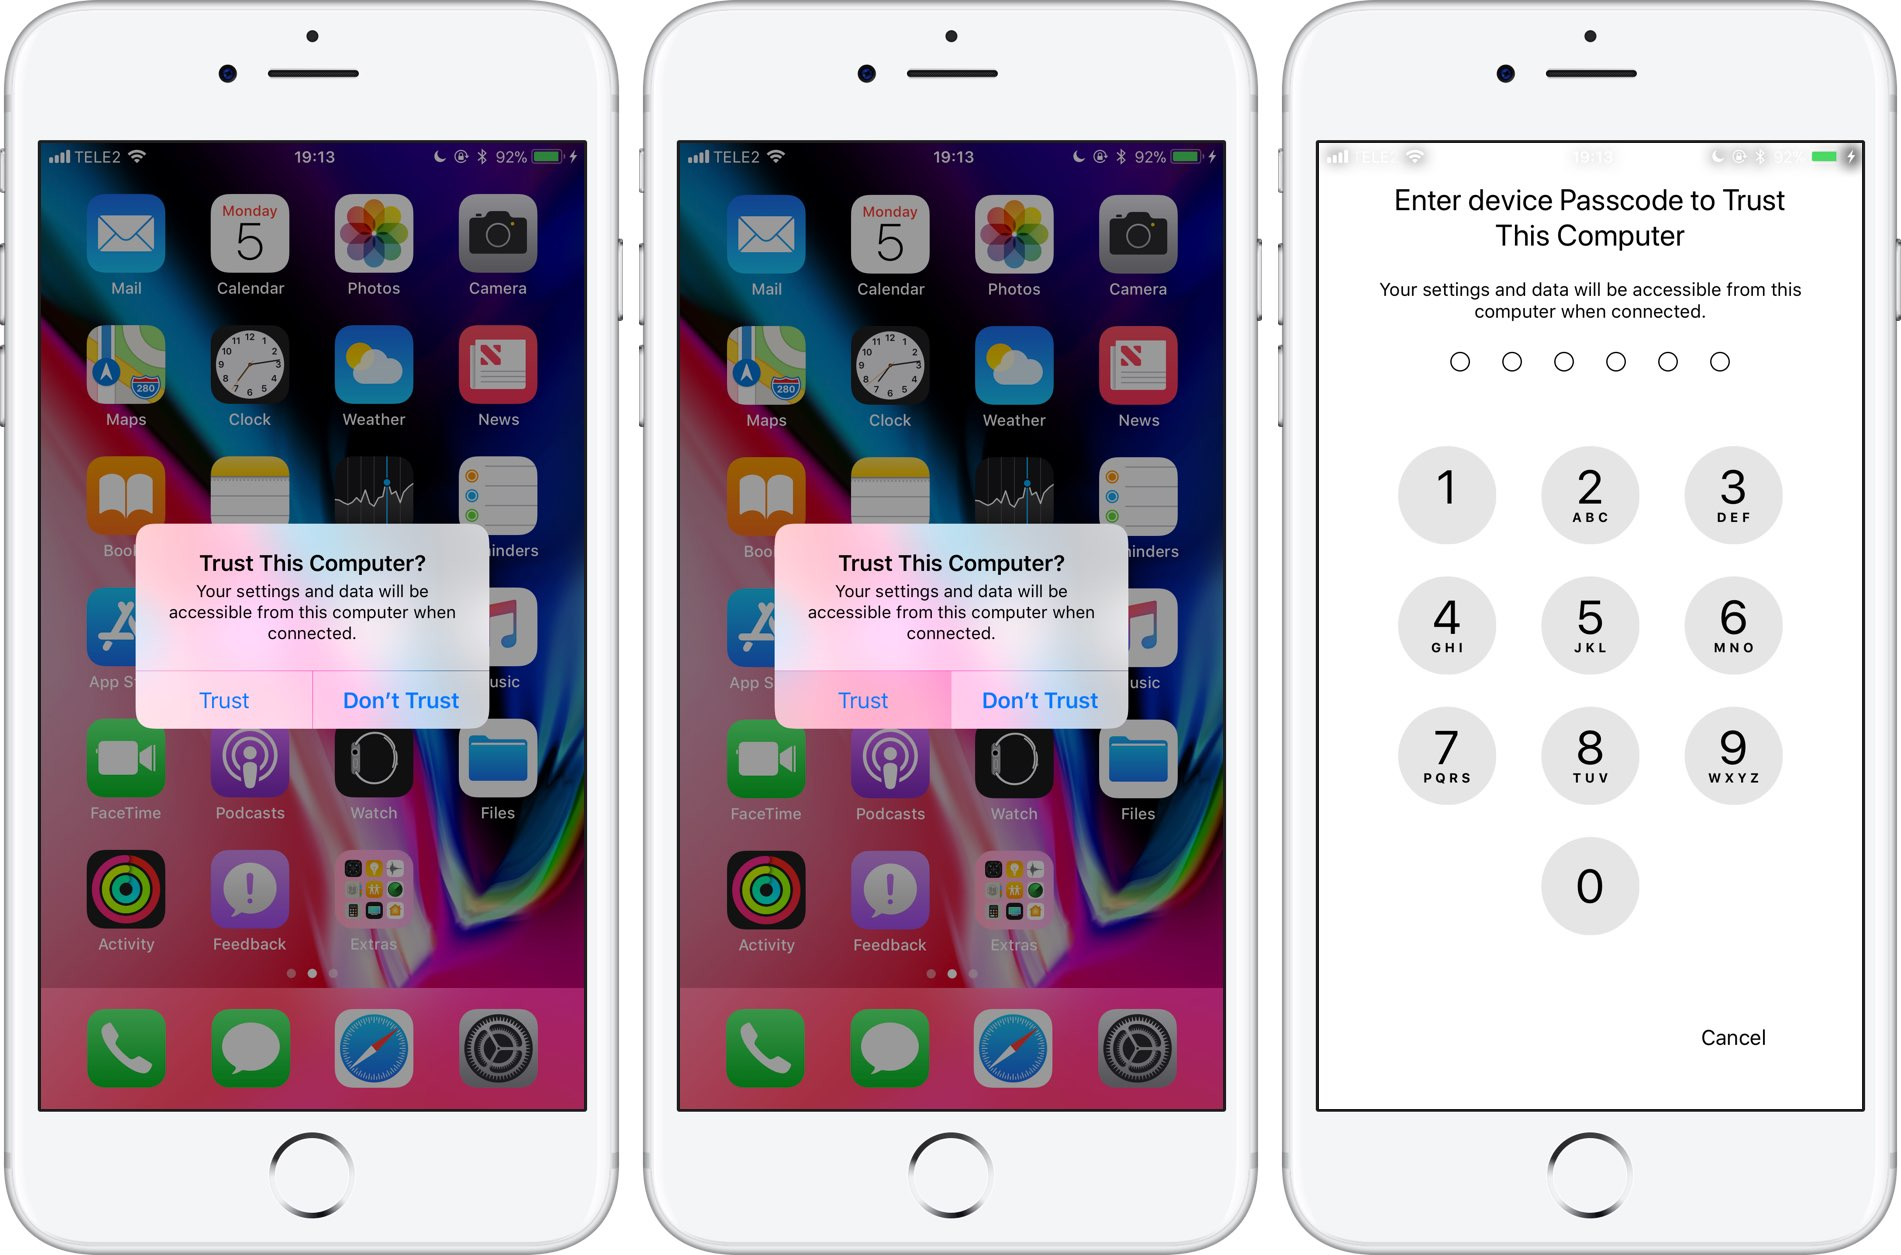 iOS 11's increased pairing security requires passcode for